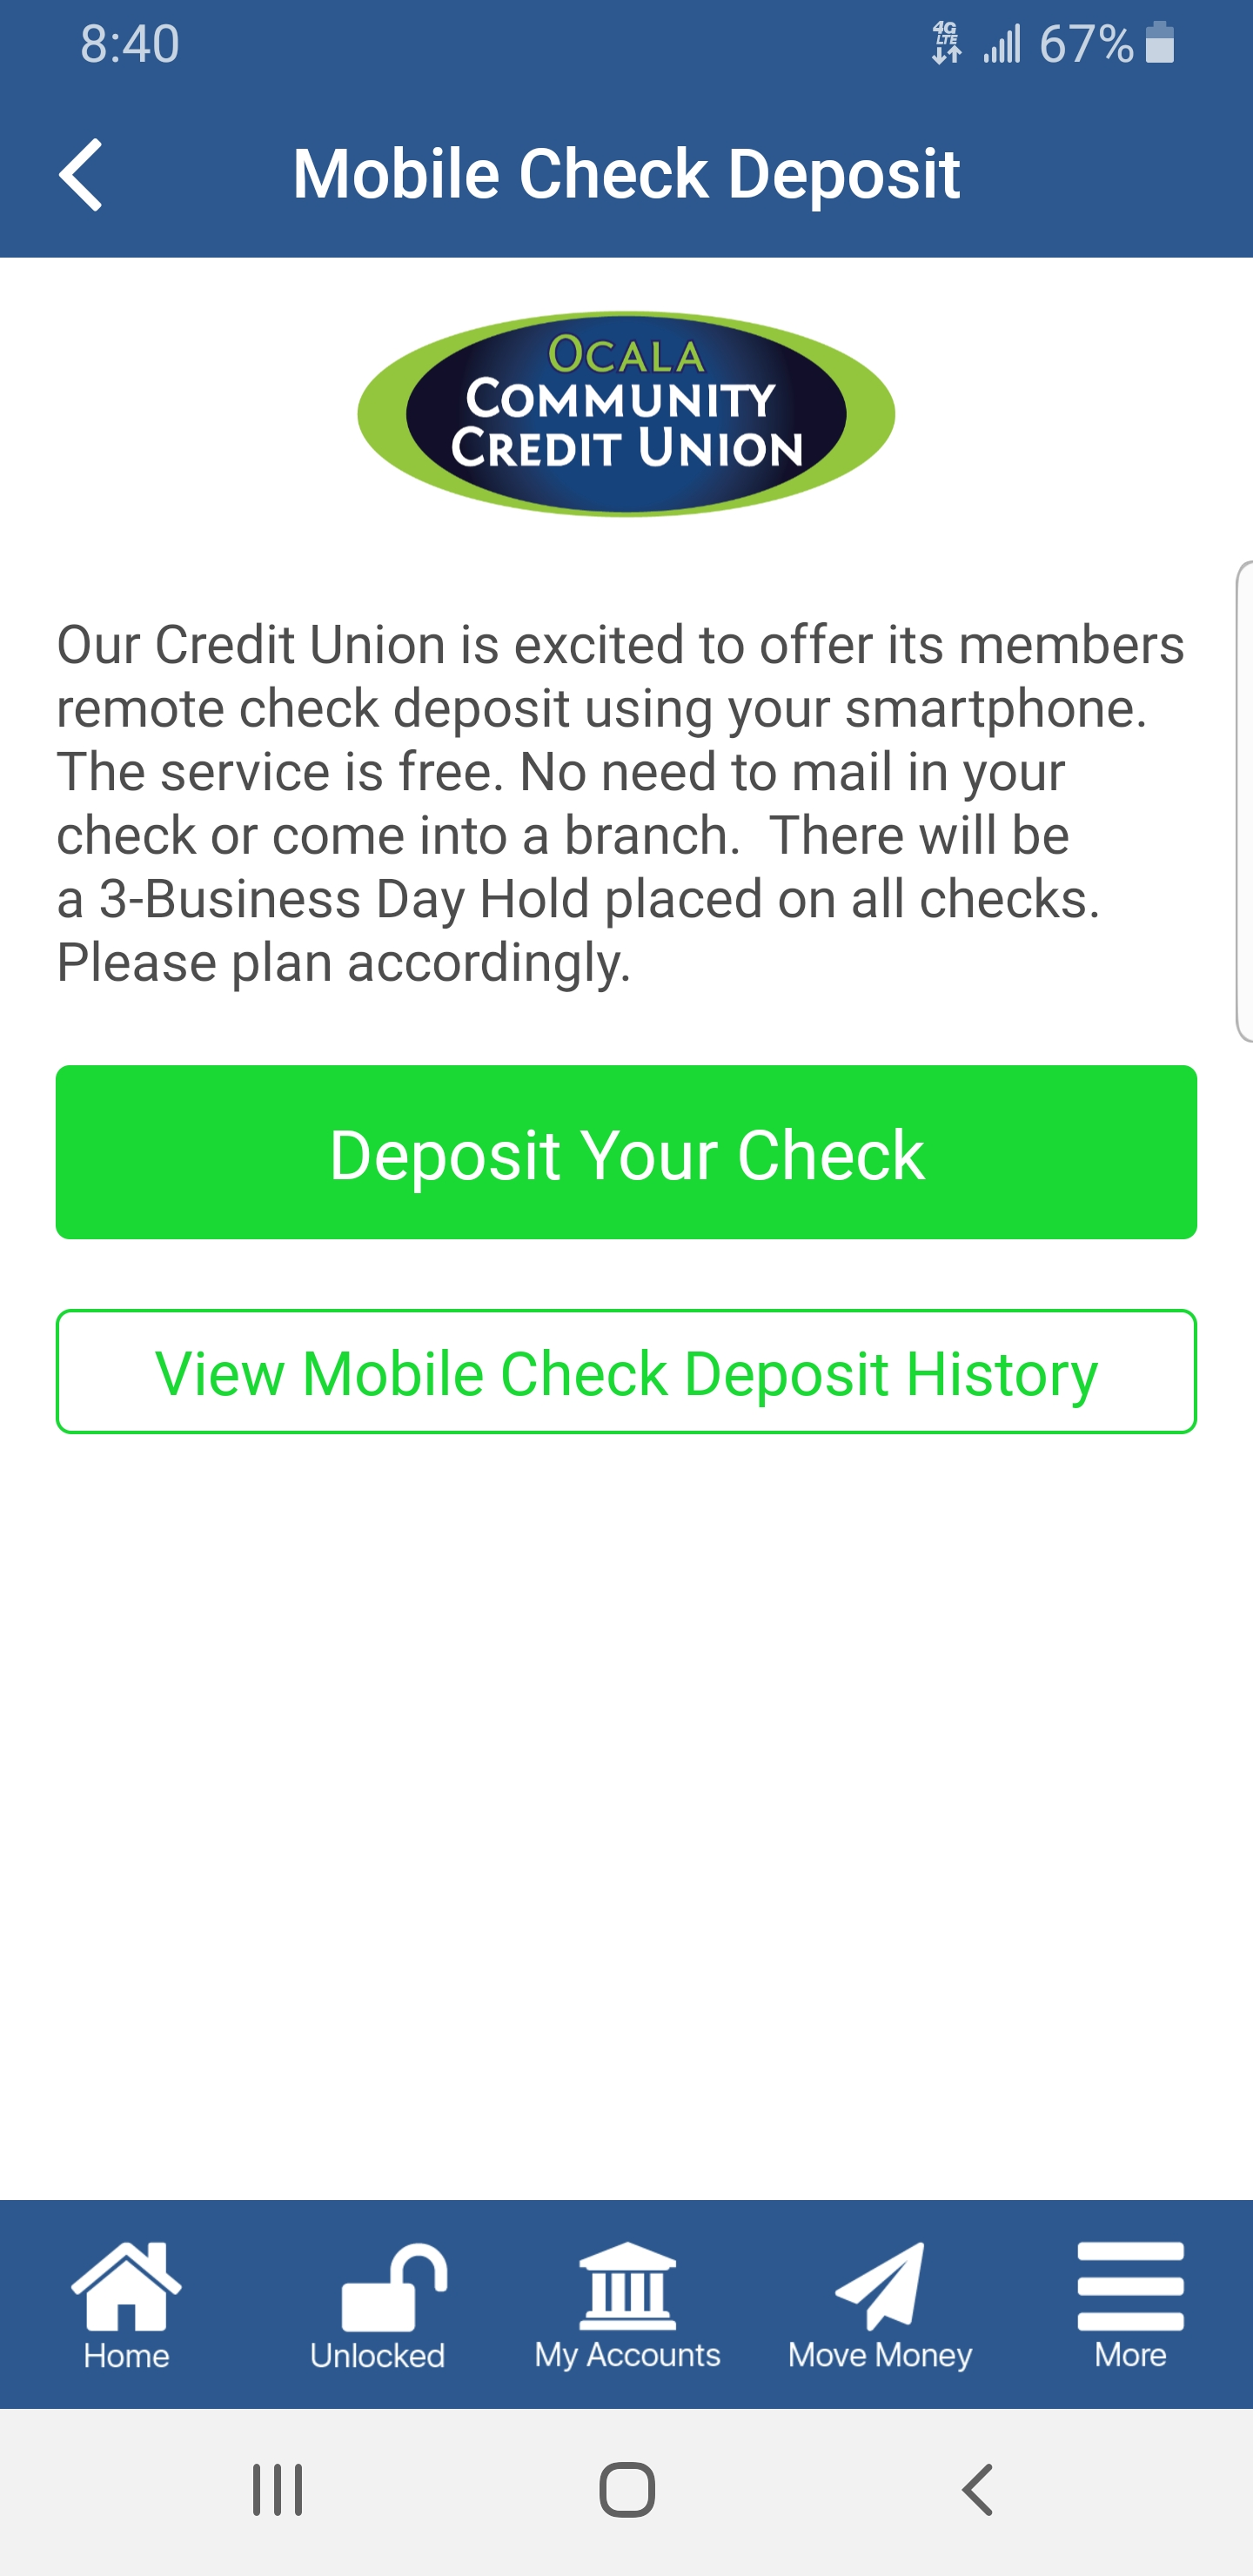 Mobile Check Deposit - 3 Bus Day Hold